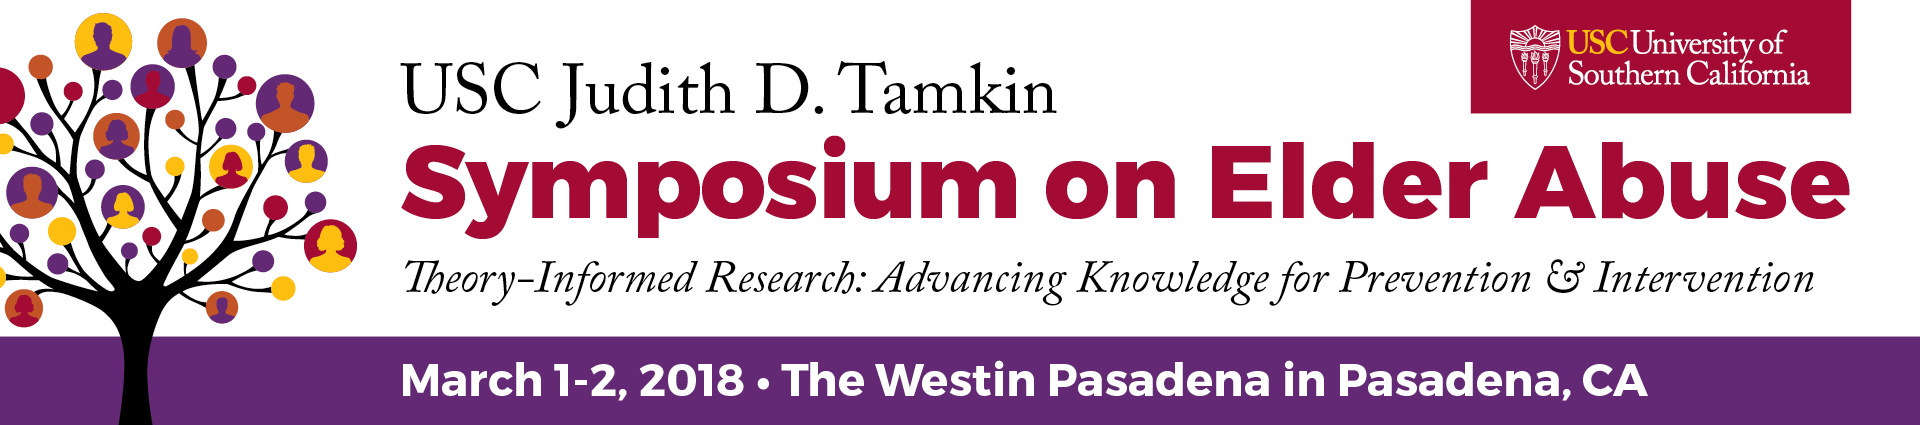 USC Judith D. Tamkin Symposium on Elder Abuse